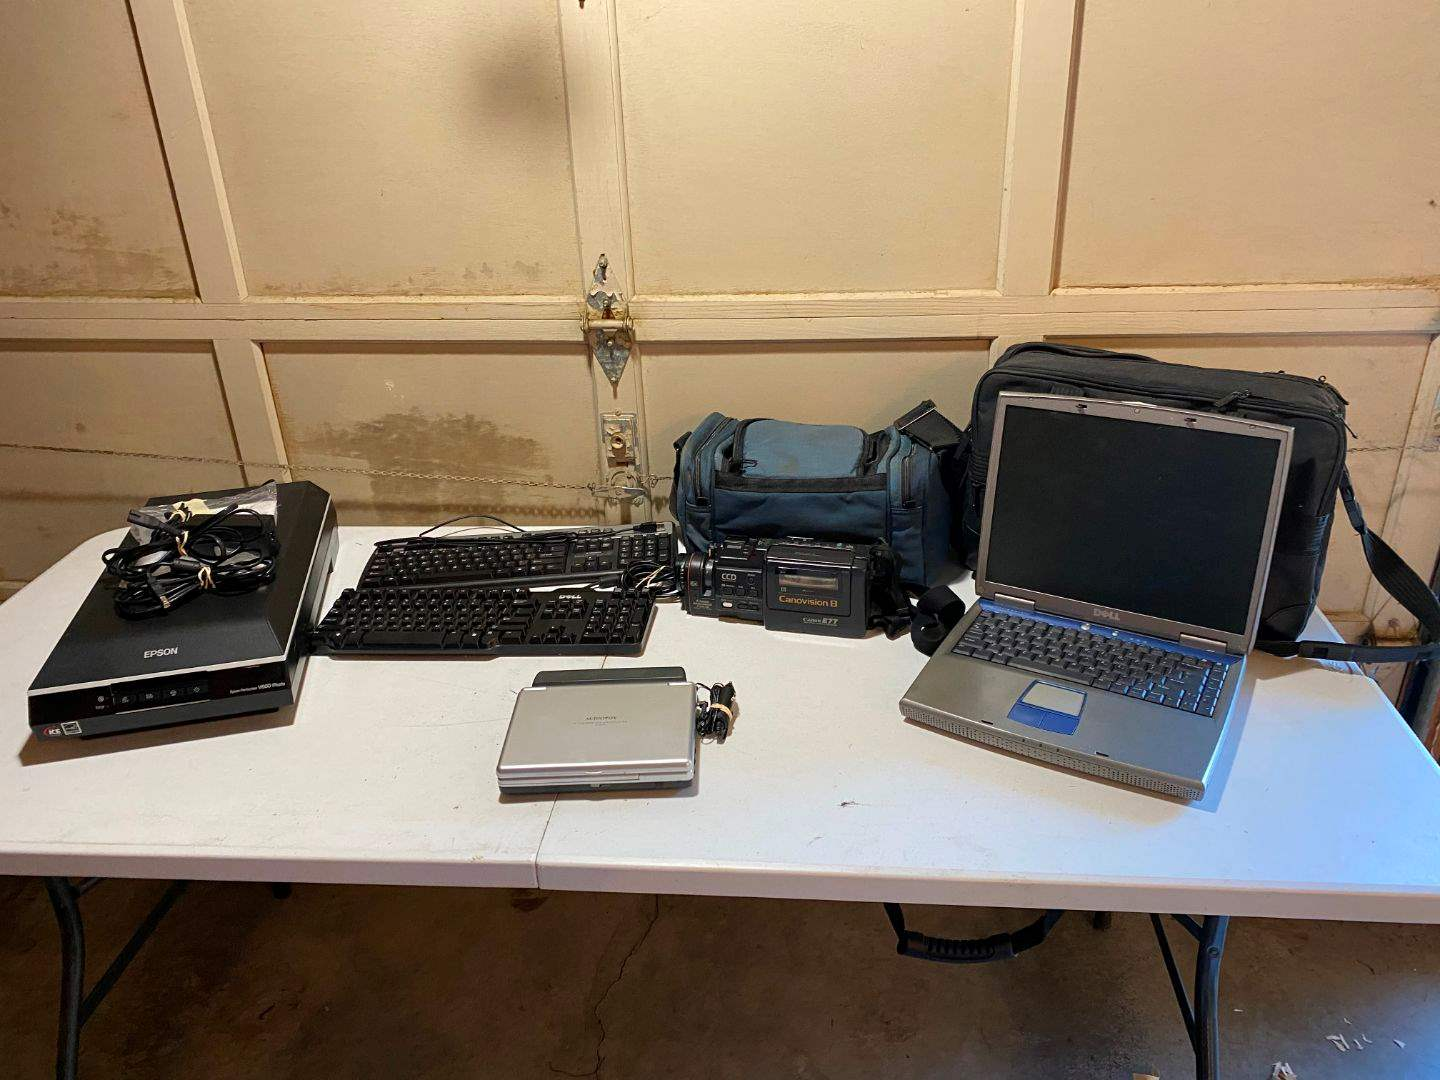 Lot # 222 - Epson V600 Photo Scanner, Key Boards, Dell Laptop, Canon Camcorder, Audiovox Portable DVD Player (main image)